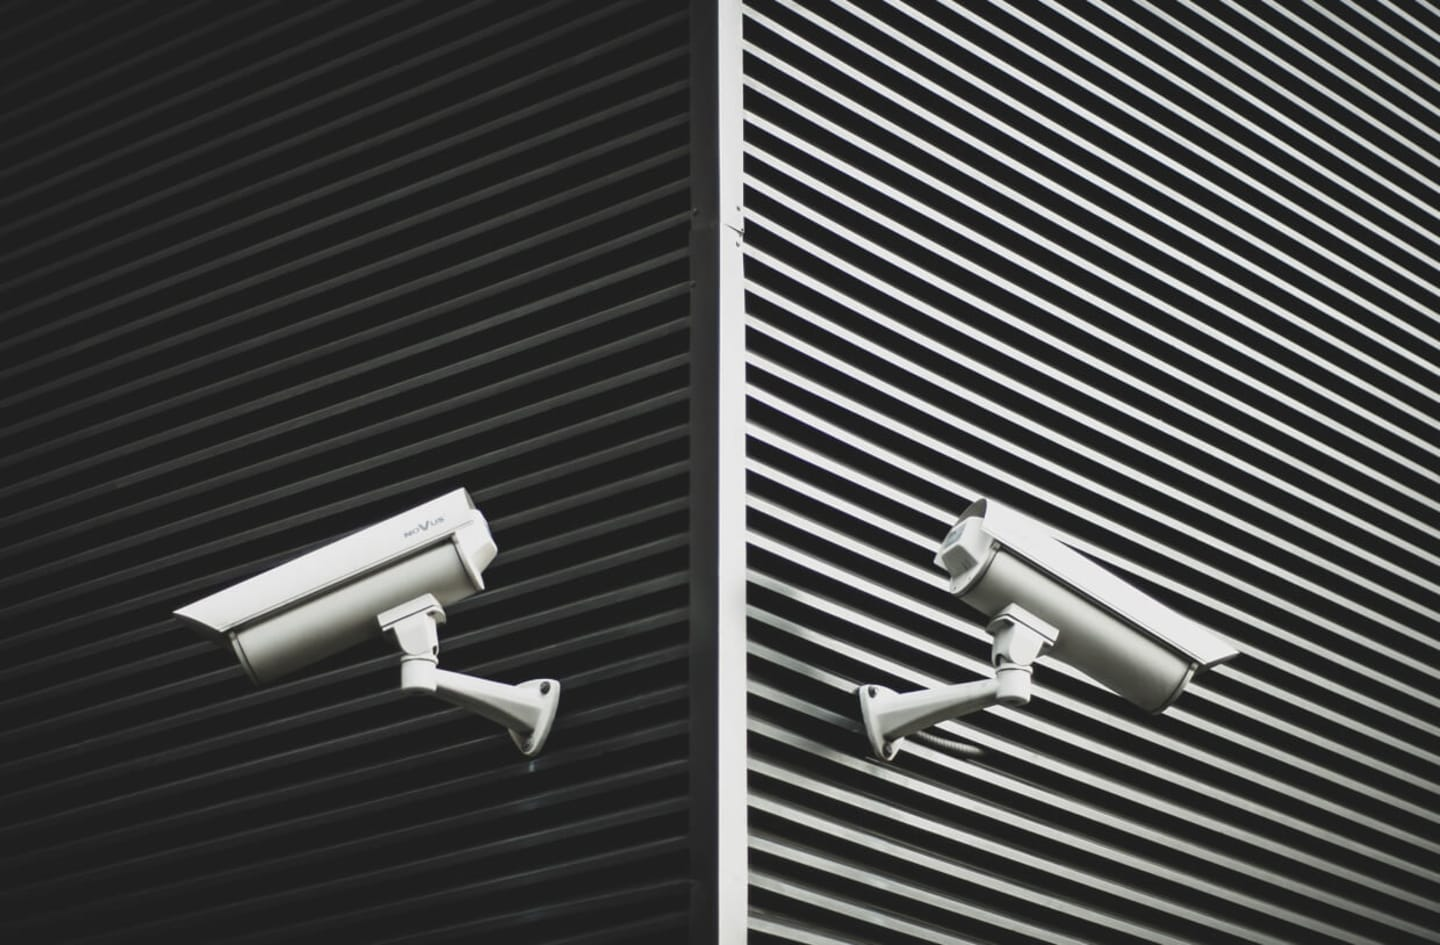 Common Mistakes When Buying High Tech Security Cameras